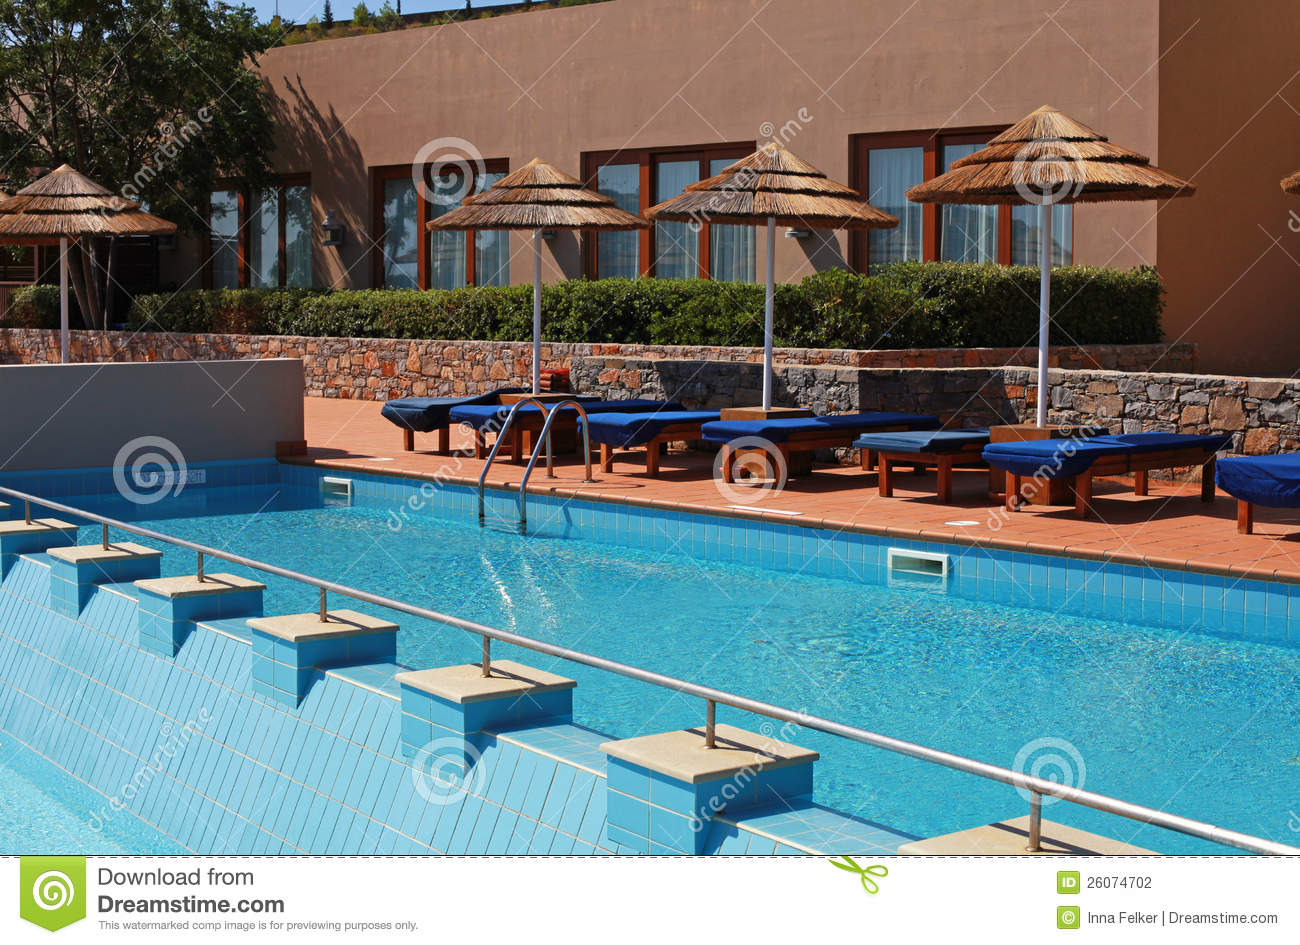 Poolside Bed poolside bed stock photography - image: 33378262